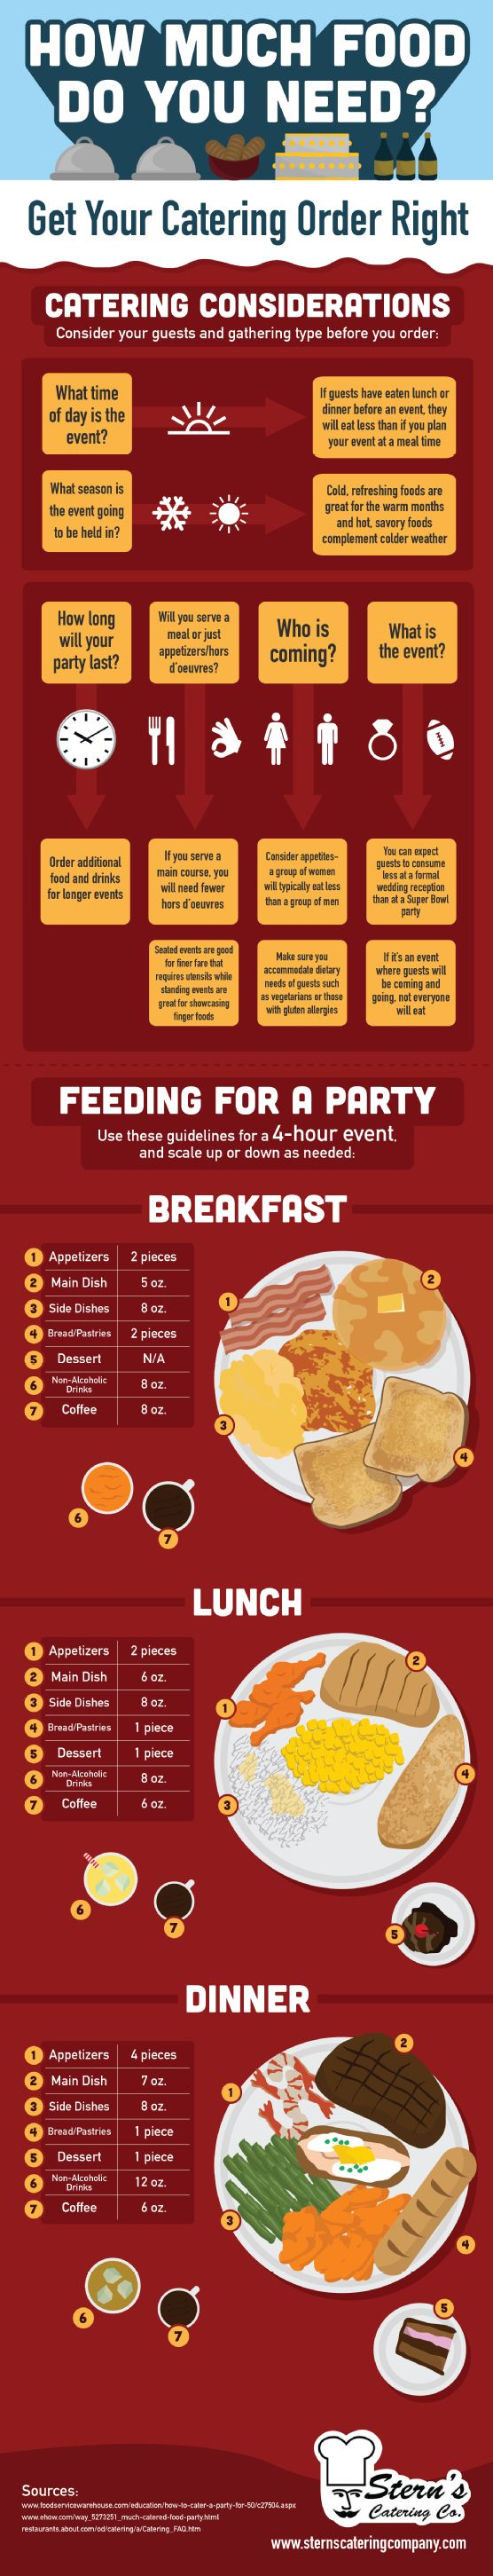 How much to #cook when planning to cater for a large #meal or gathering -  Discover more in this #infographic - http://finedininglovers.com/blog/food-drinks/infographic-how-to-plan-a-large-meal/